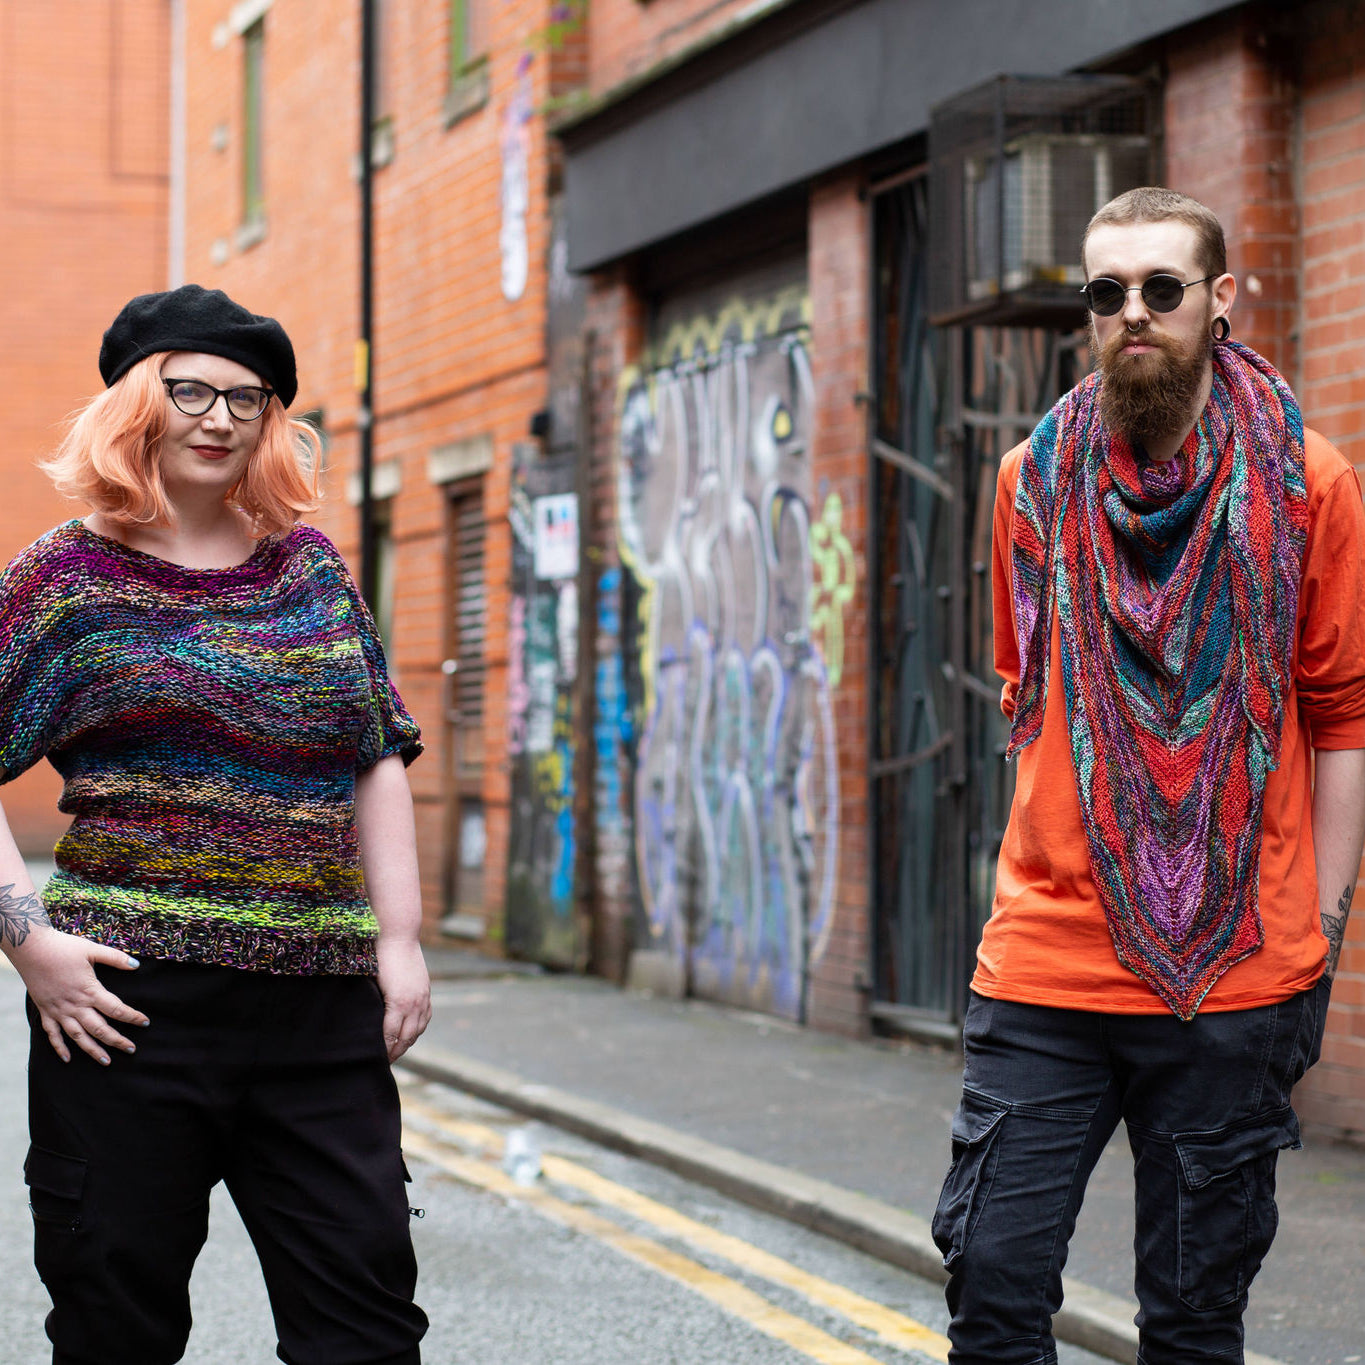 Countess and Haydn in knitwear in the street. Photo by Decoy Media in Manchester's Northern Quarter. Papillon shawl designed by Marin Melchior. Photography by Decor Media, Manchester